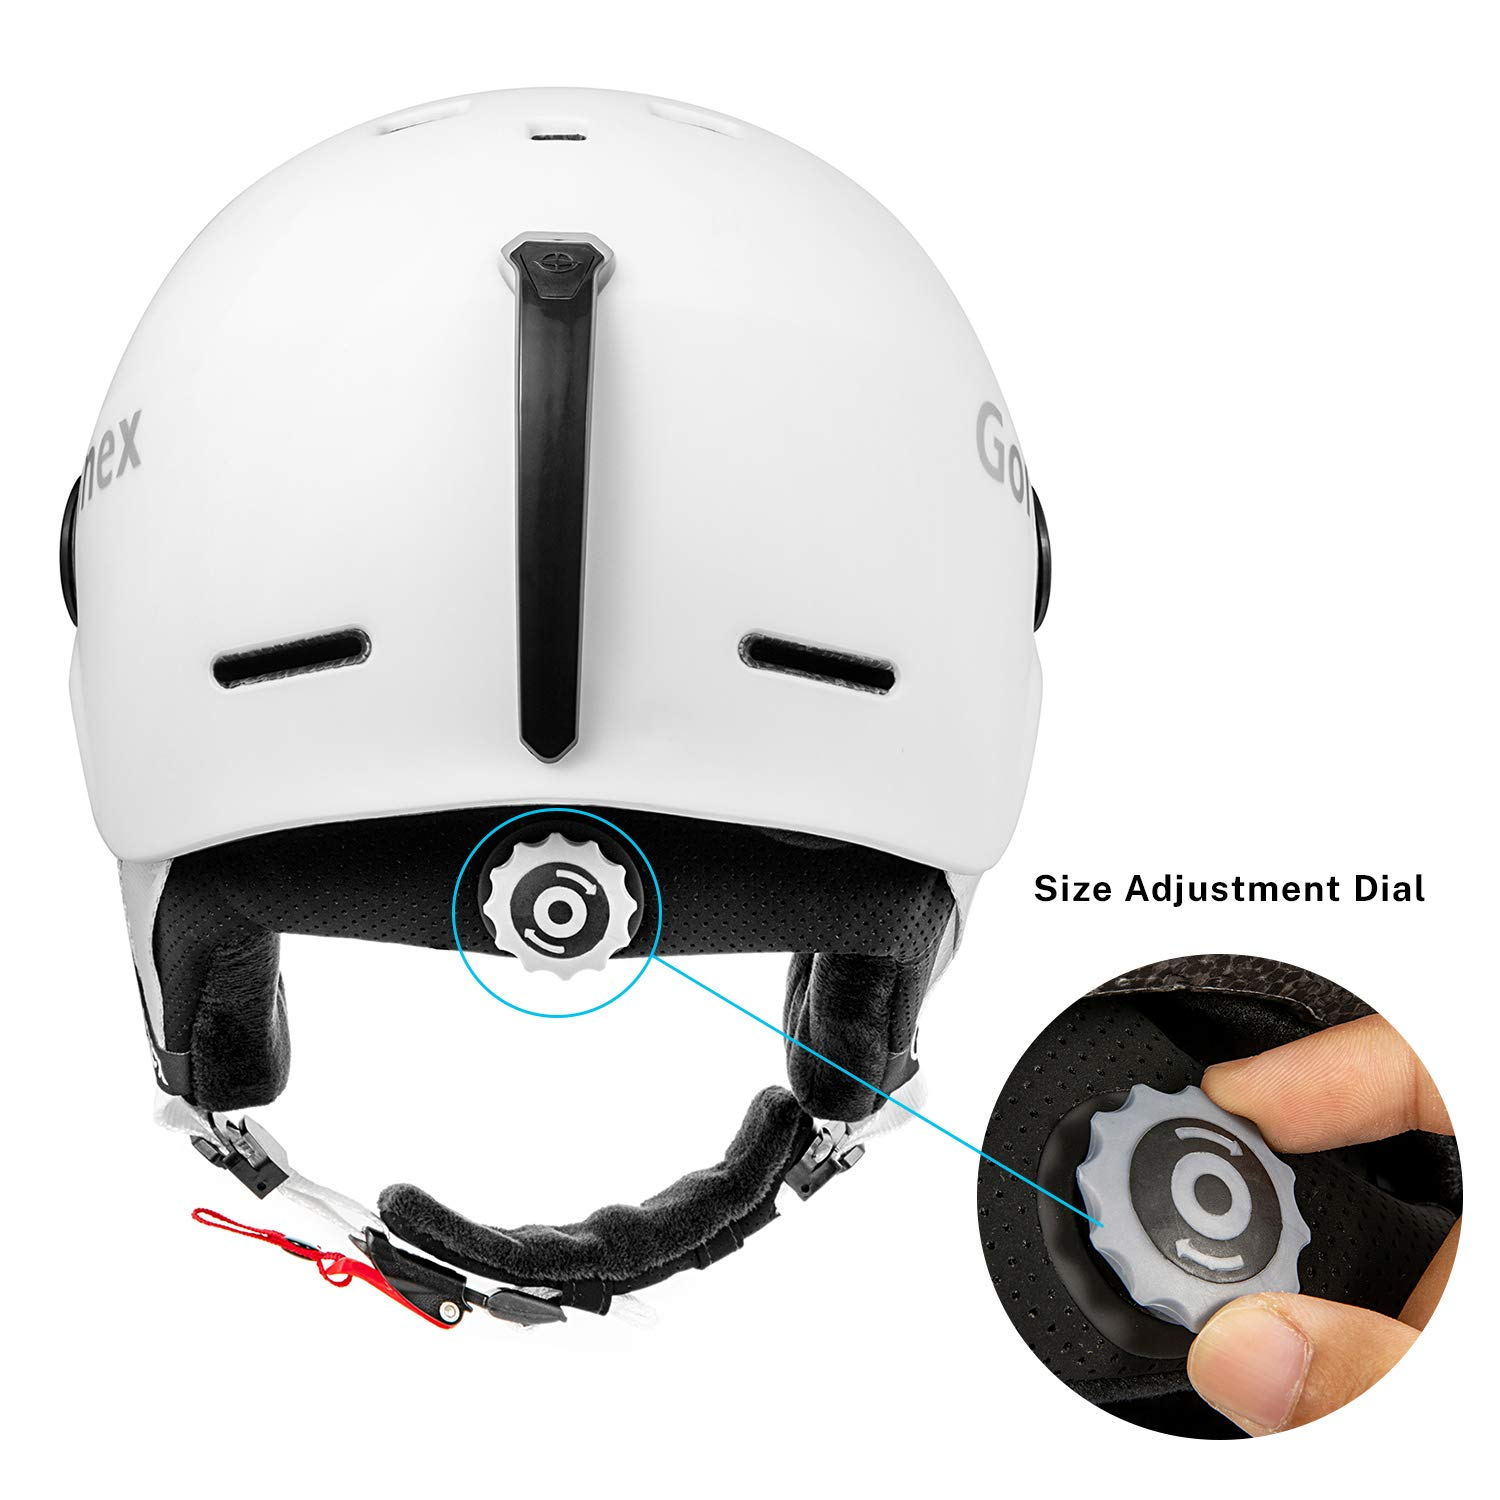 S//M//L Size Accessories Included Winter Snowboard Windproof Skiing Helmet for Men Women /& Young Gonex ASTM Certified Ski Helmet with Detachable Goggles